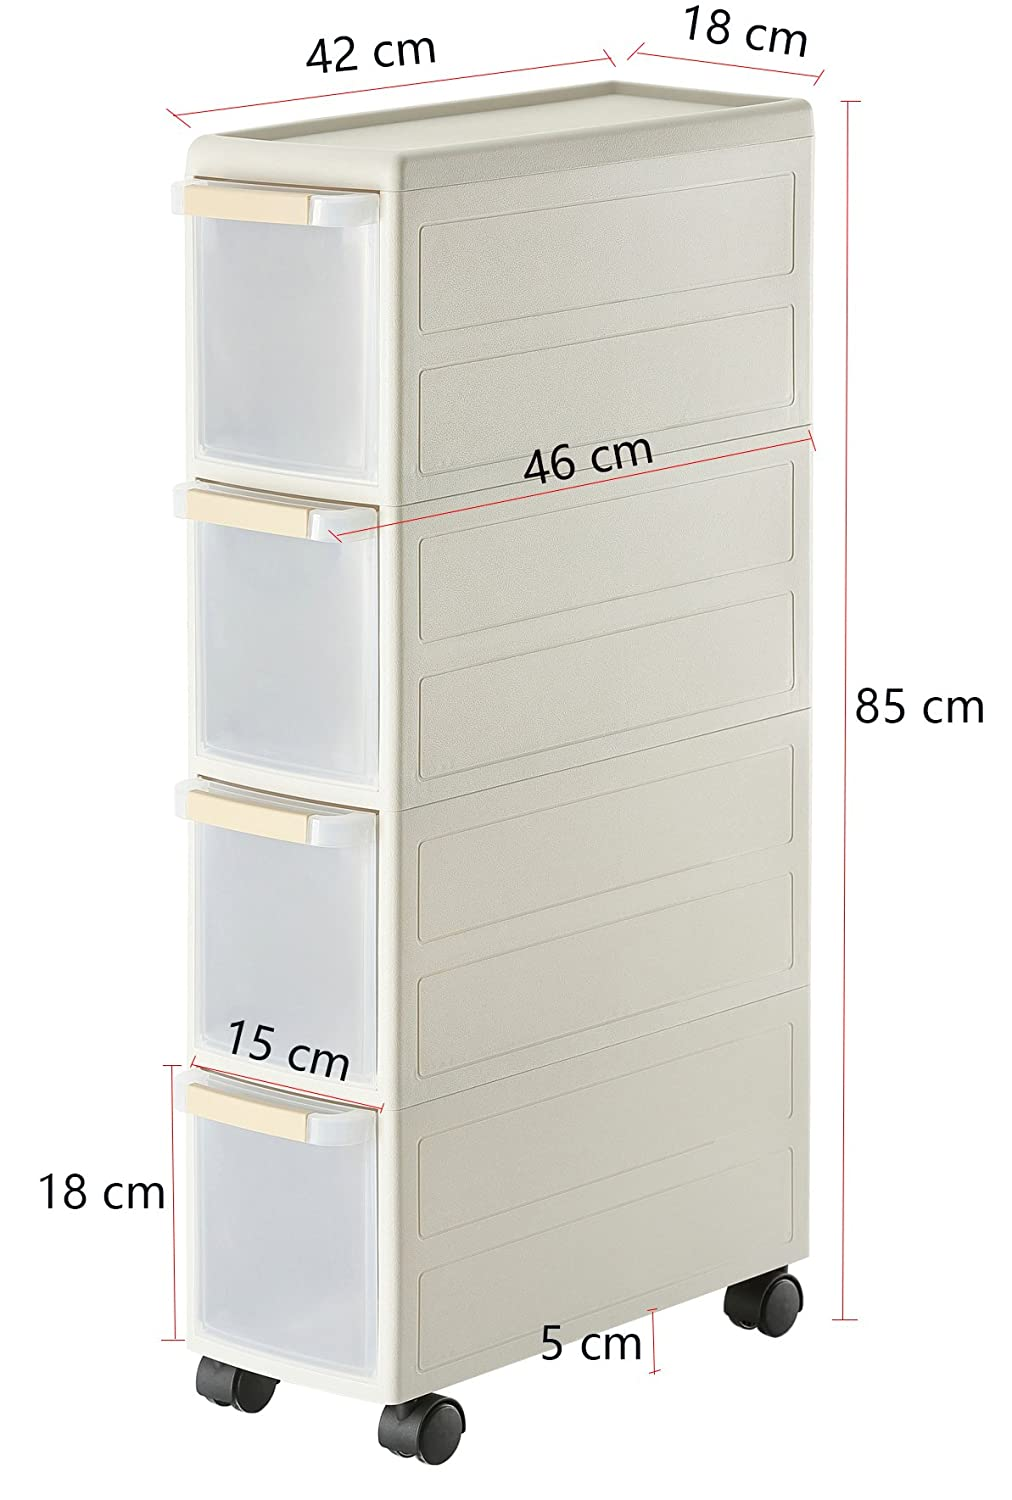 Grey Orolay Plastic Storage Trolley with Drawers on Wheels Cabinet Rack 4 Drawers